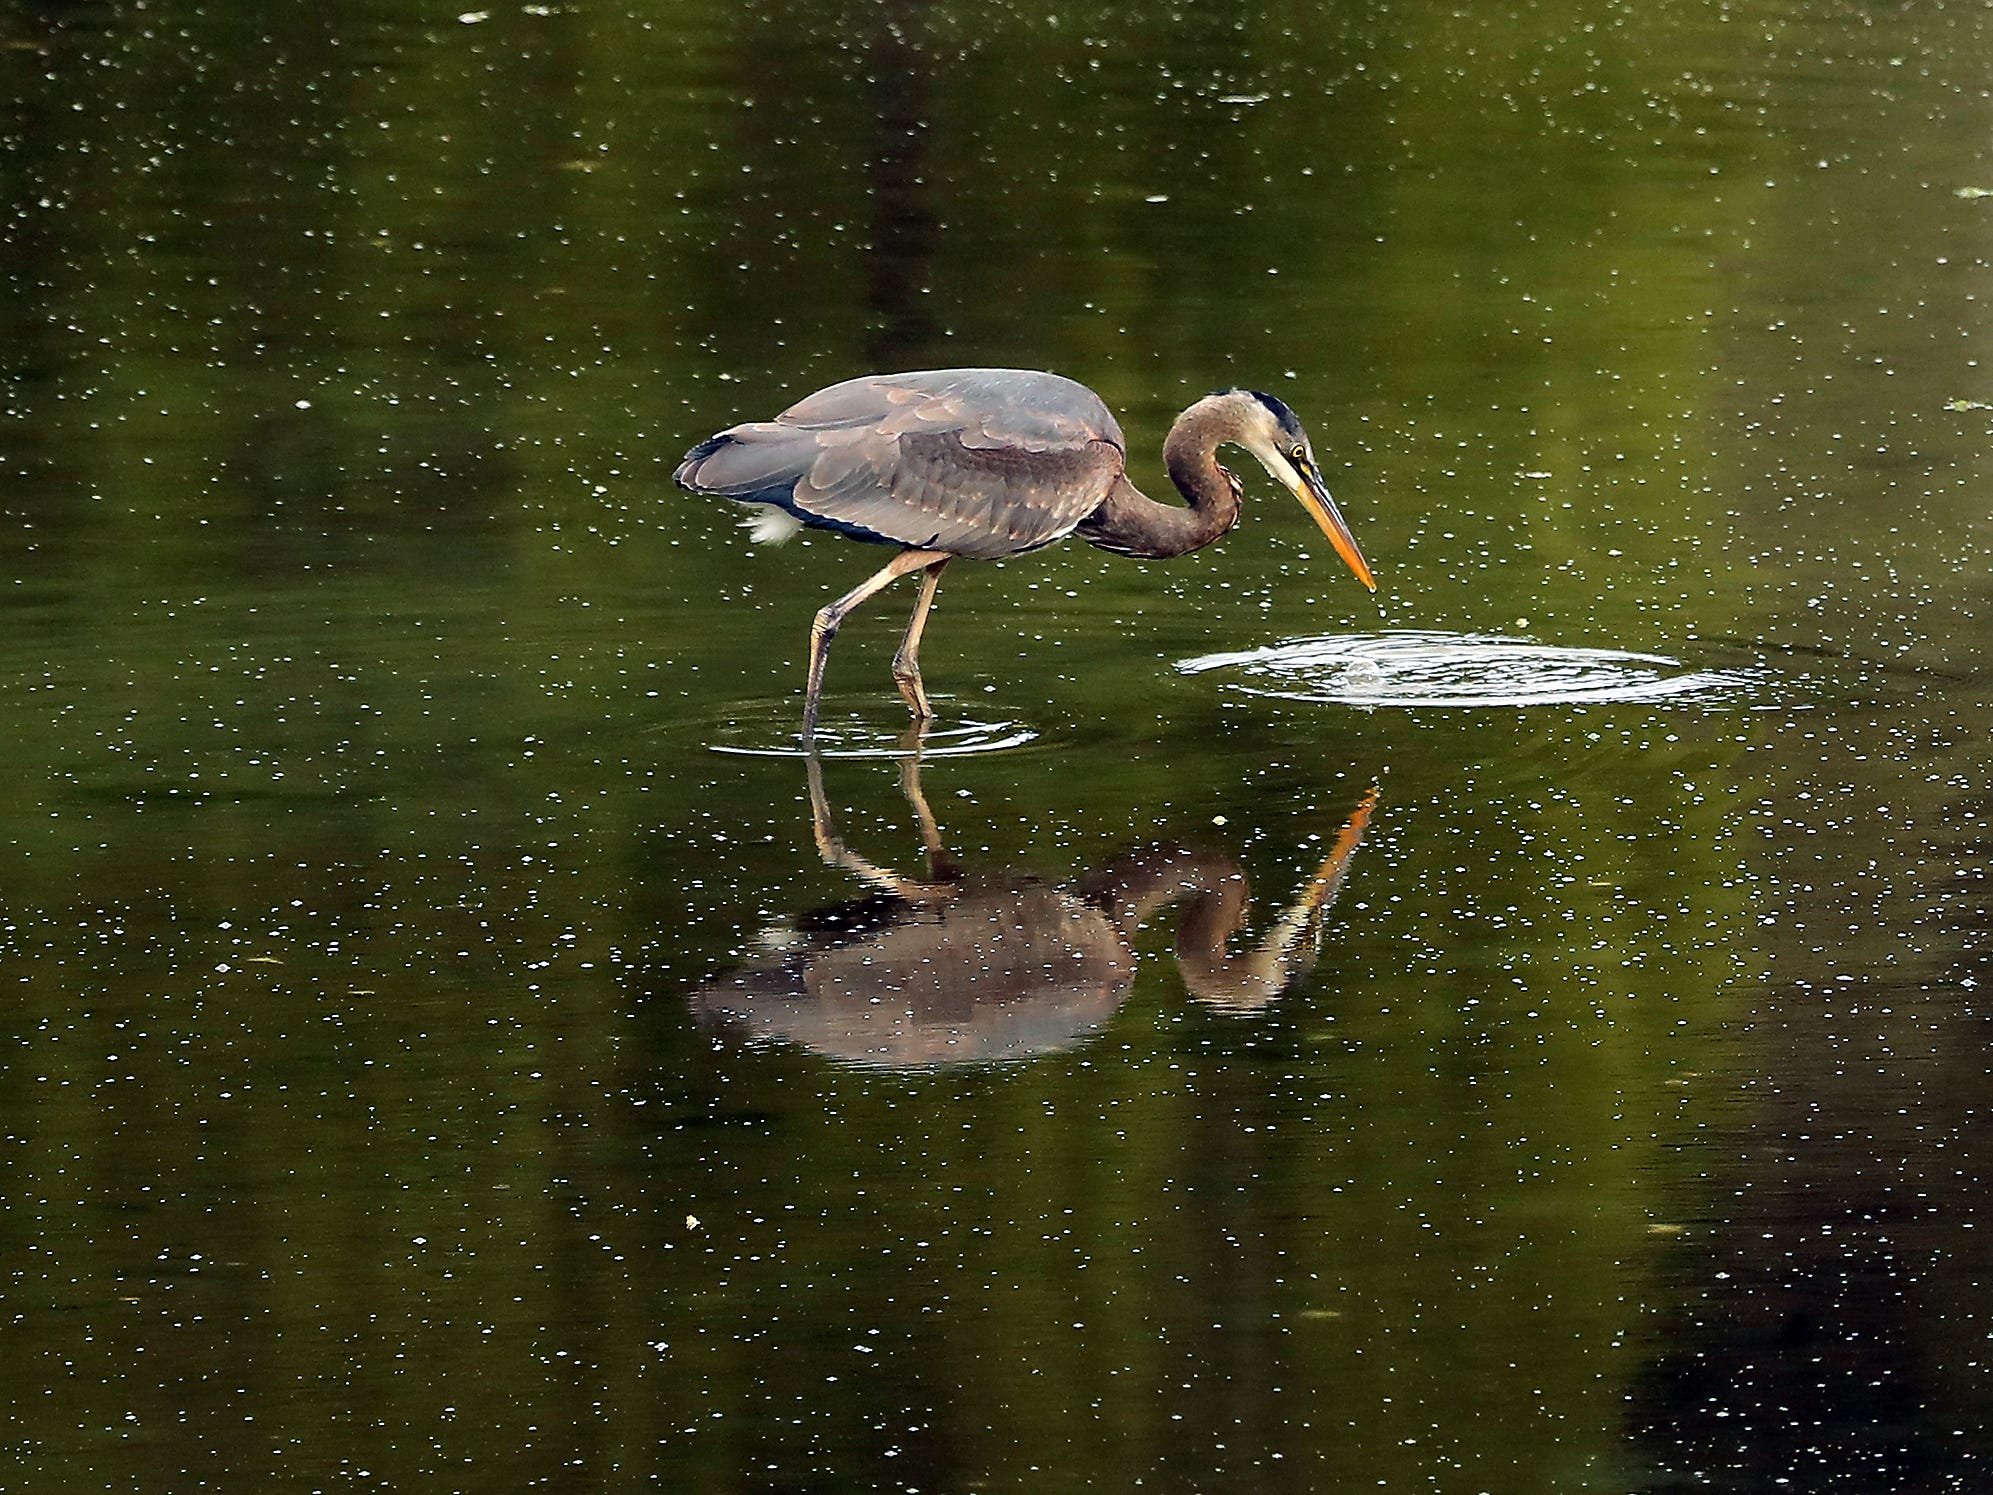 A great blue heron fishes in the reflective waters during low tide in Bainbridge Island's Eagle Harbor.